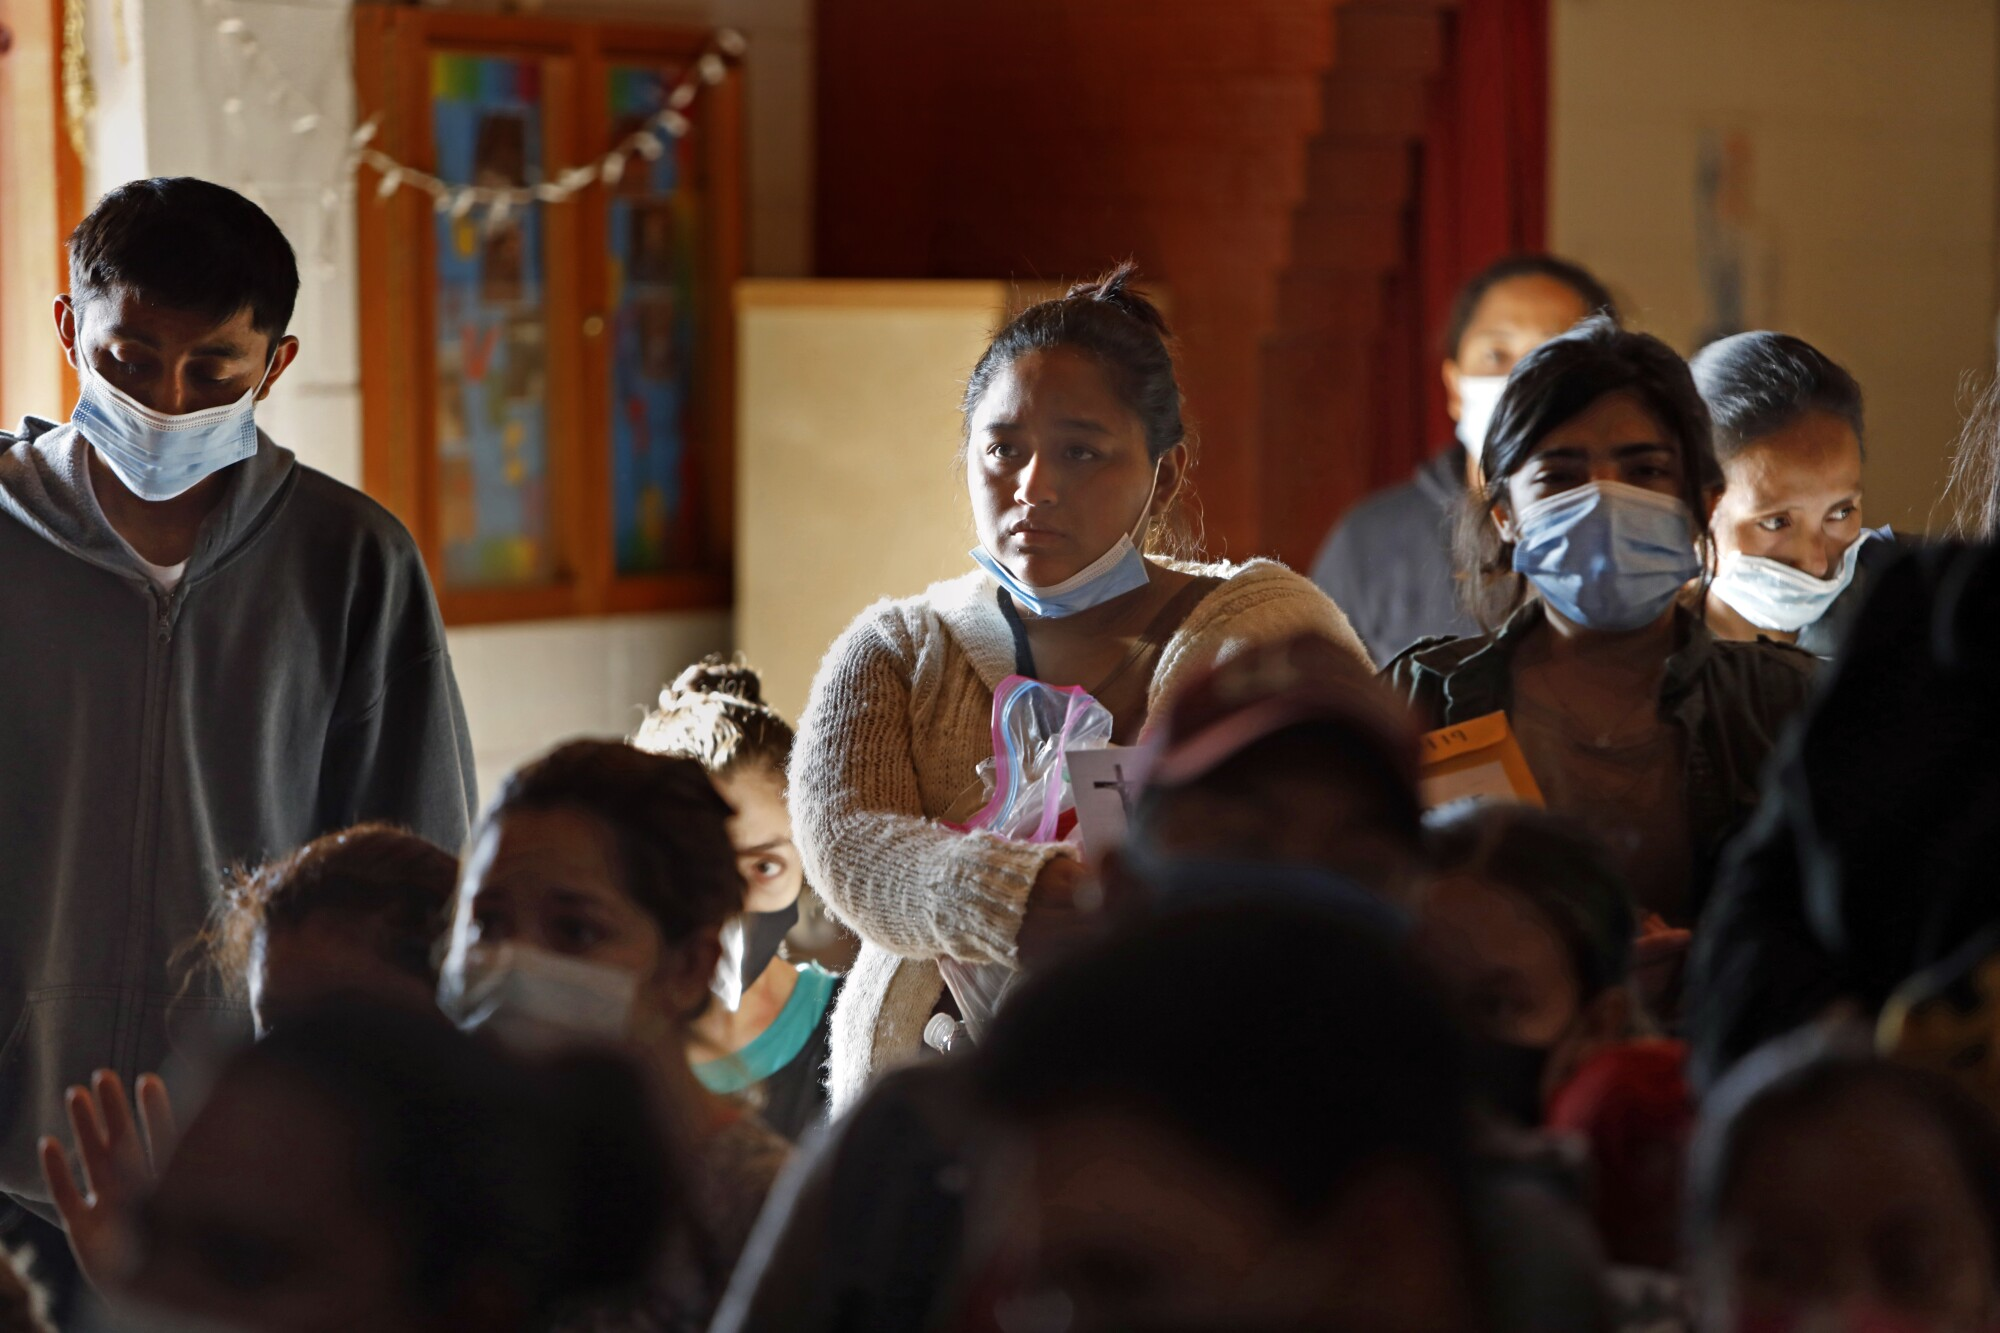 Migrants from Honduras and Guatemala are temporarily staying at a shelter in Mission, Texas.